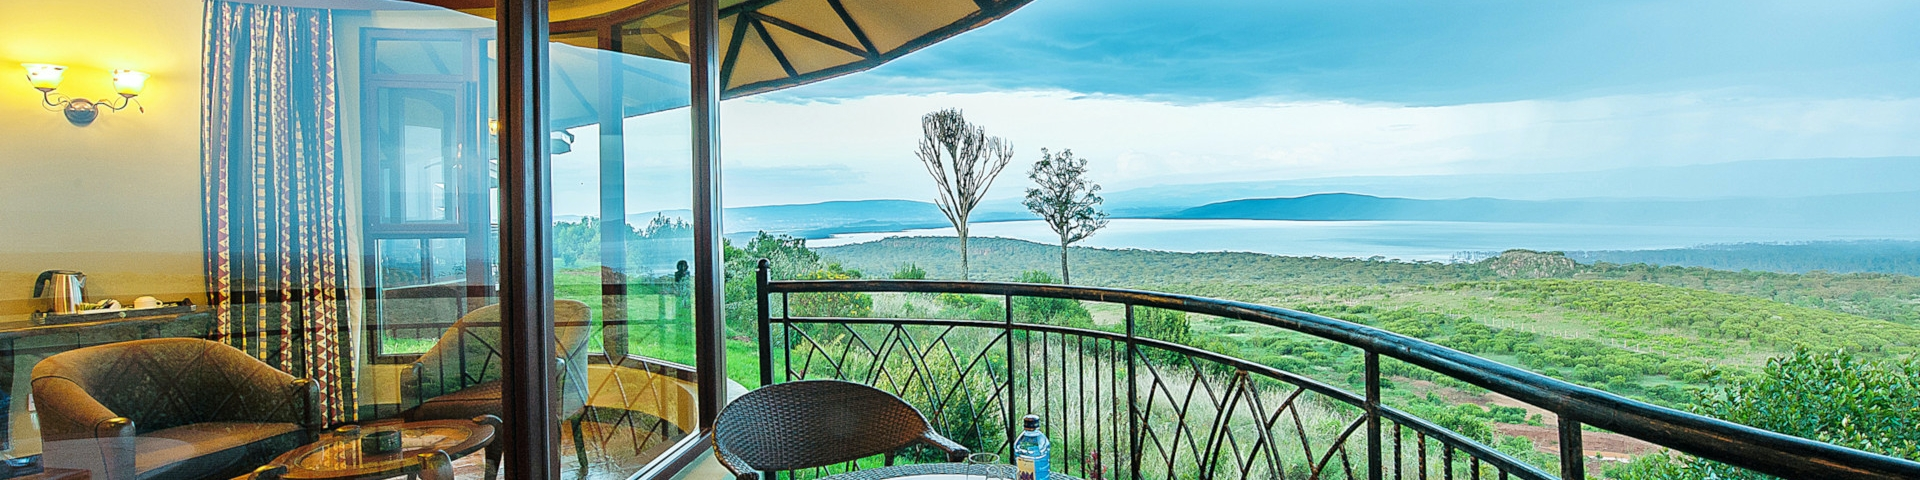 Accommodation in Lake Nakuru and Lake Naivasha Kenya View of Hills and Lake